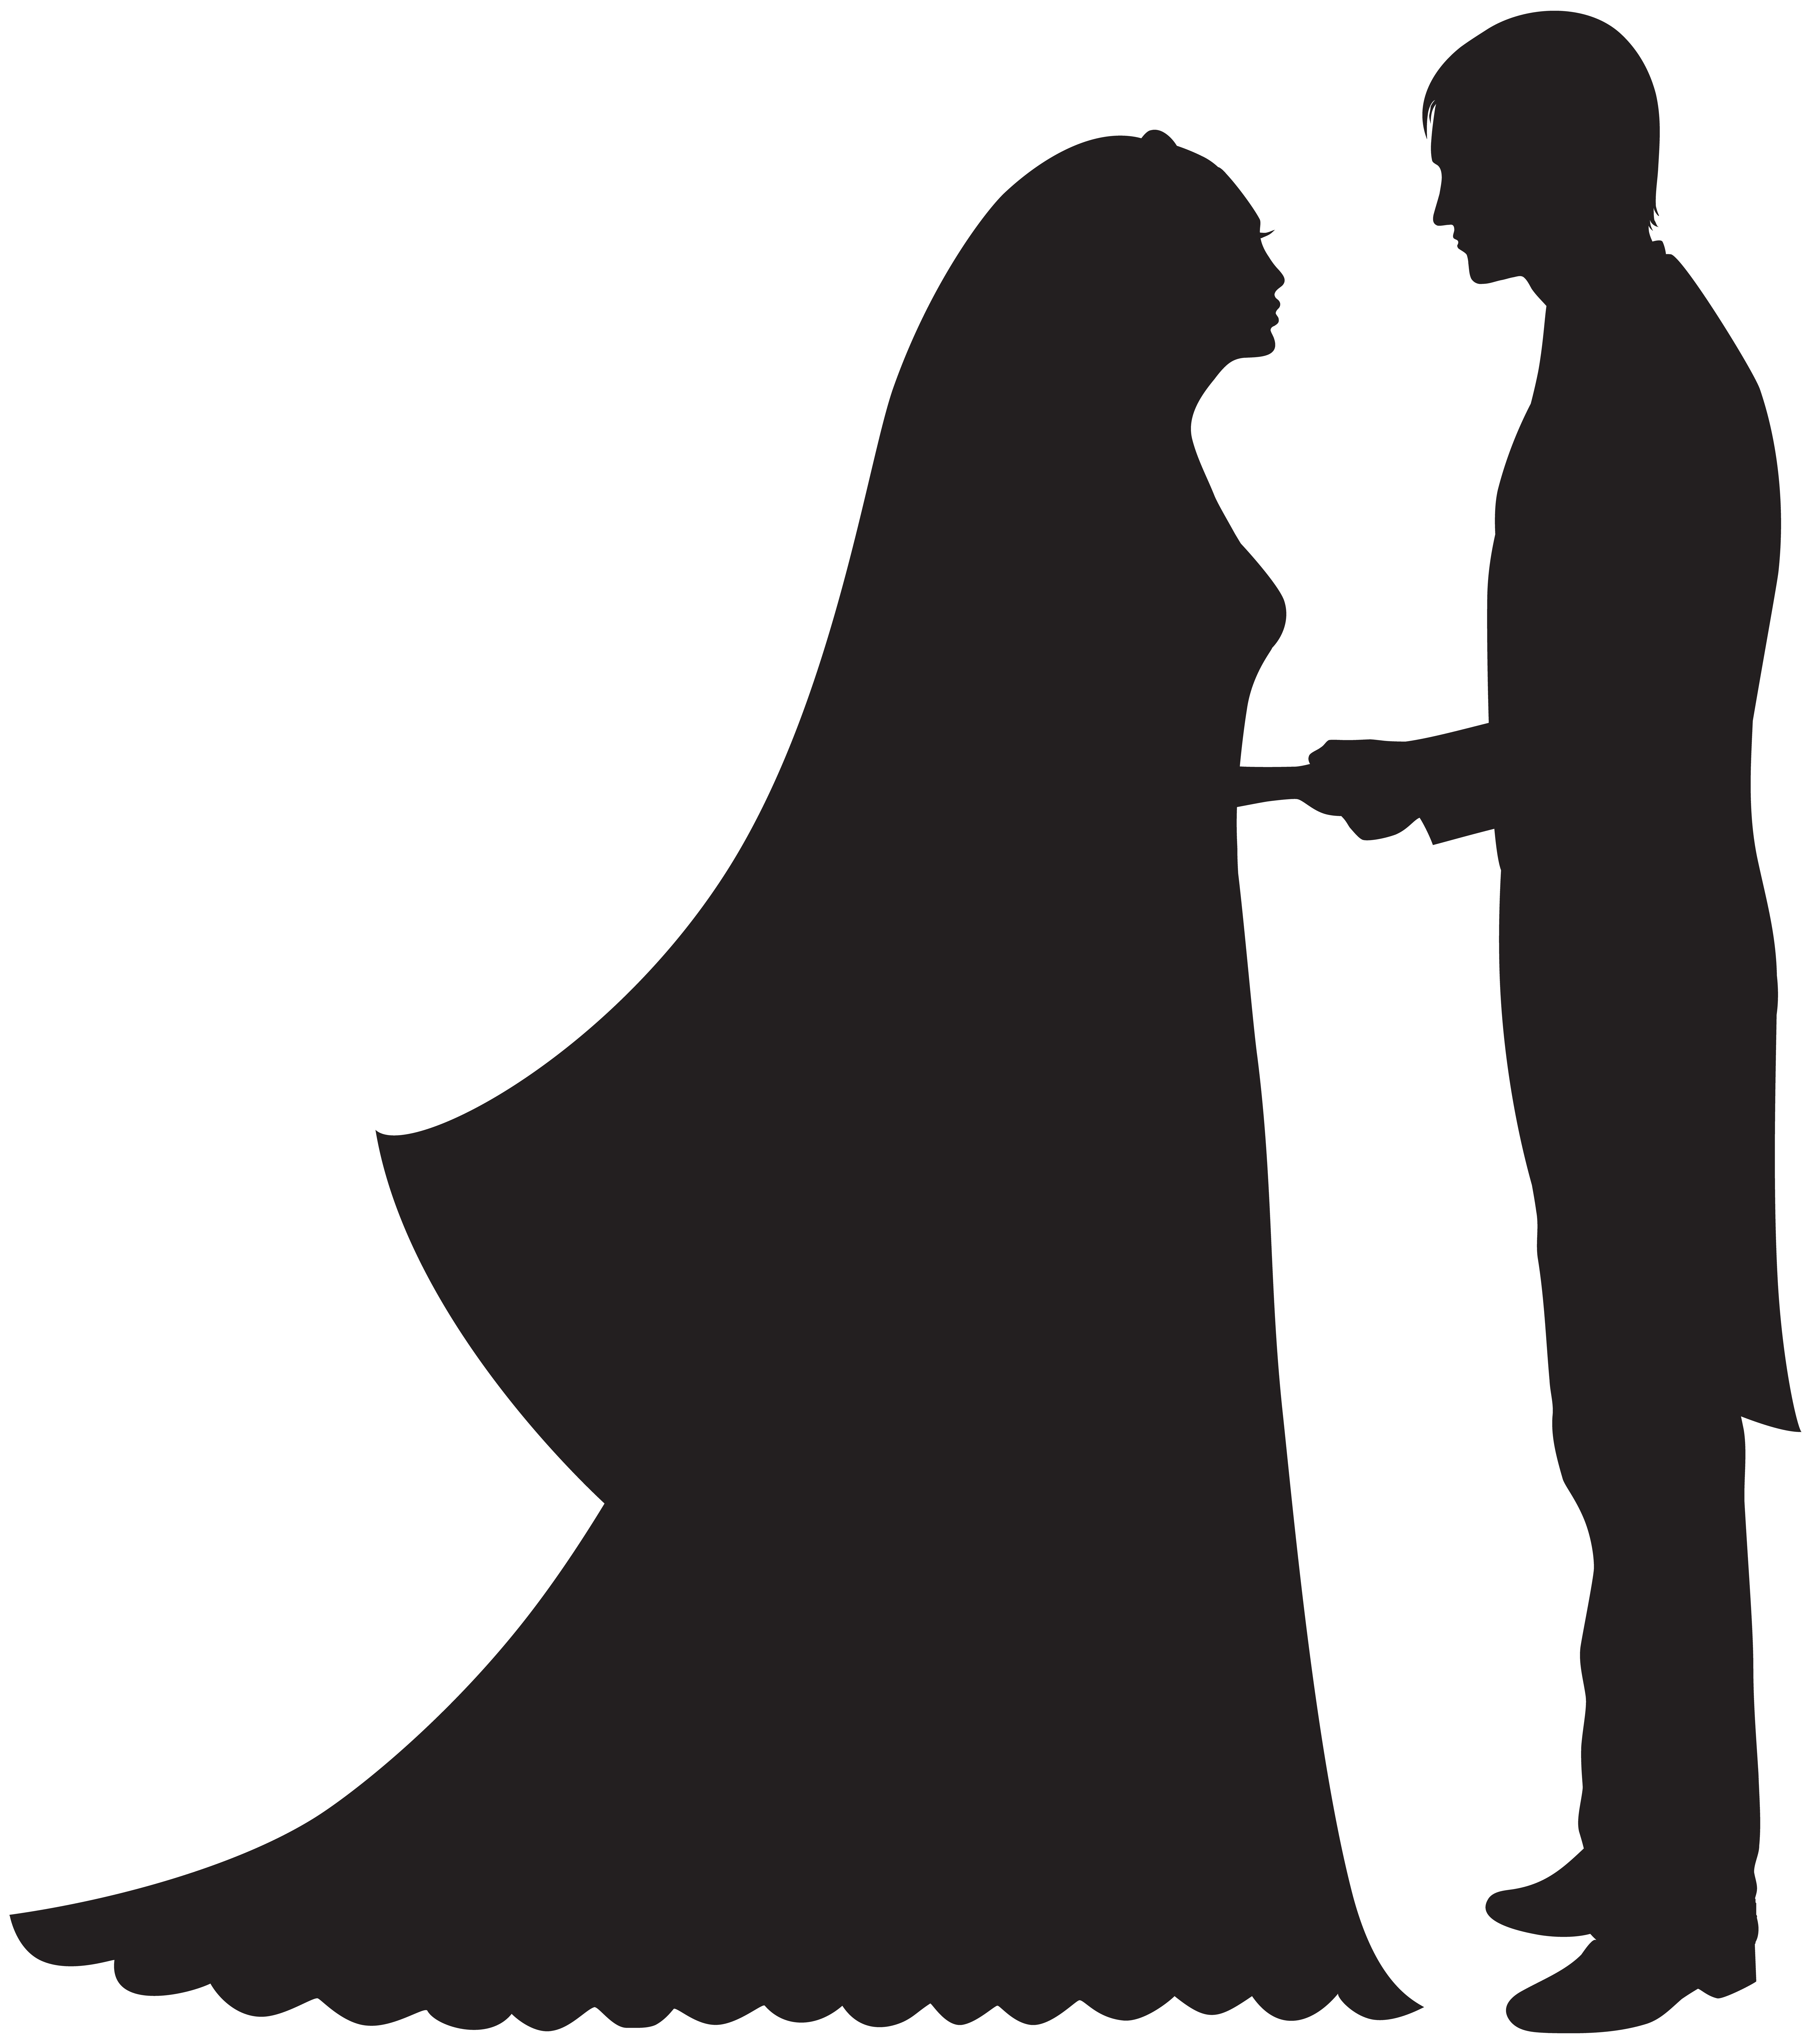 7089x8000 Bride And Groom Png Clip Art